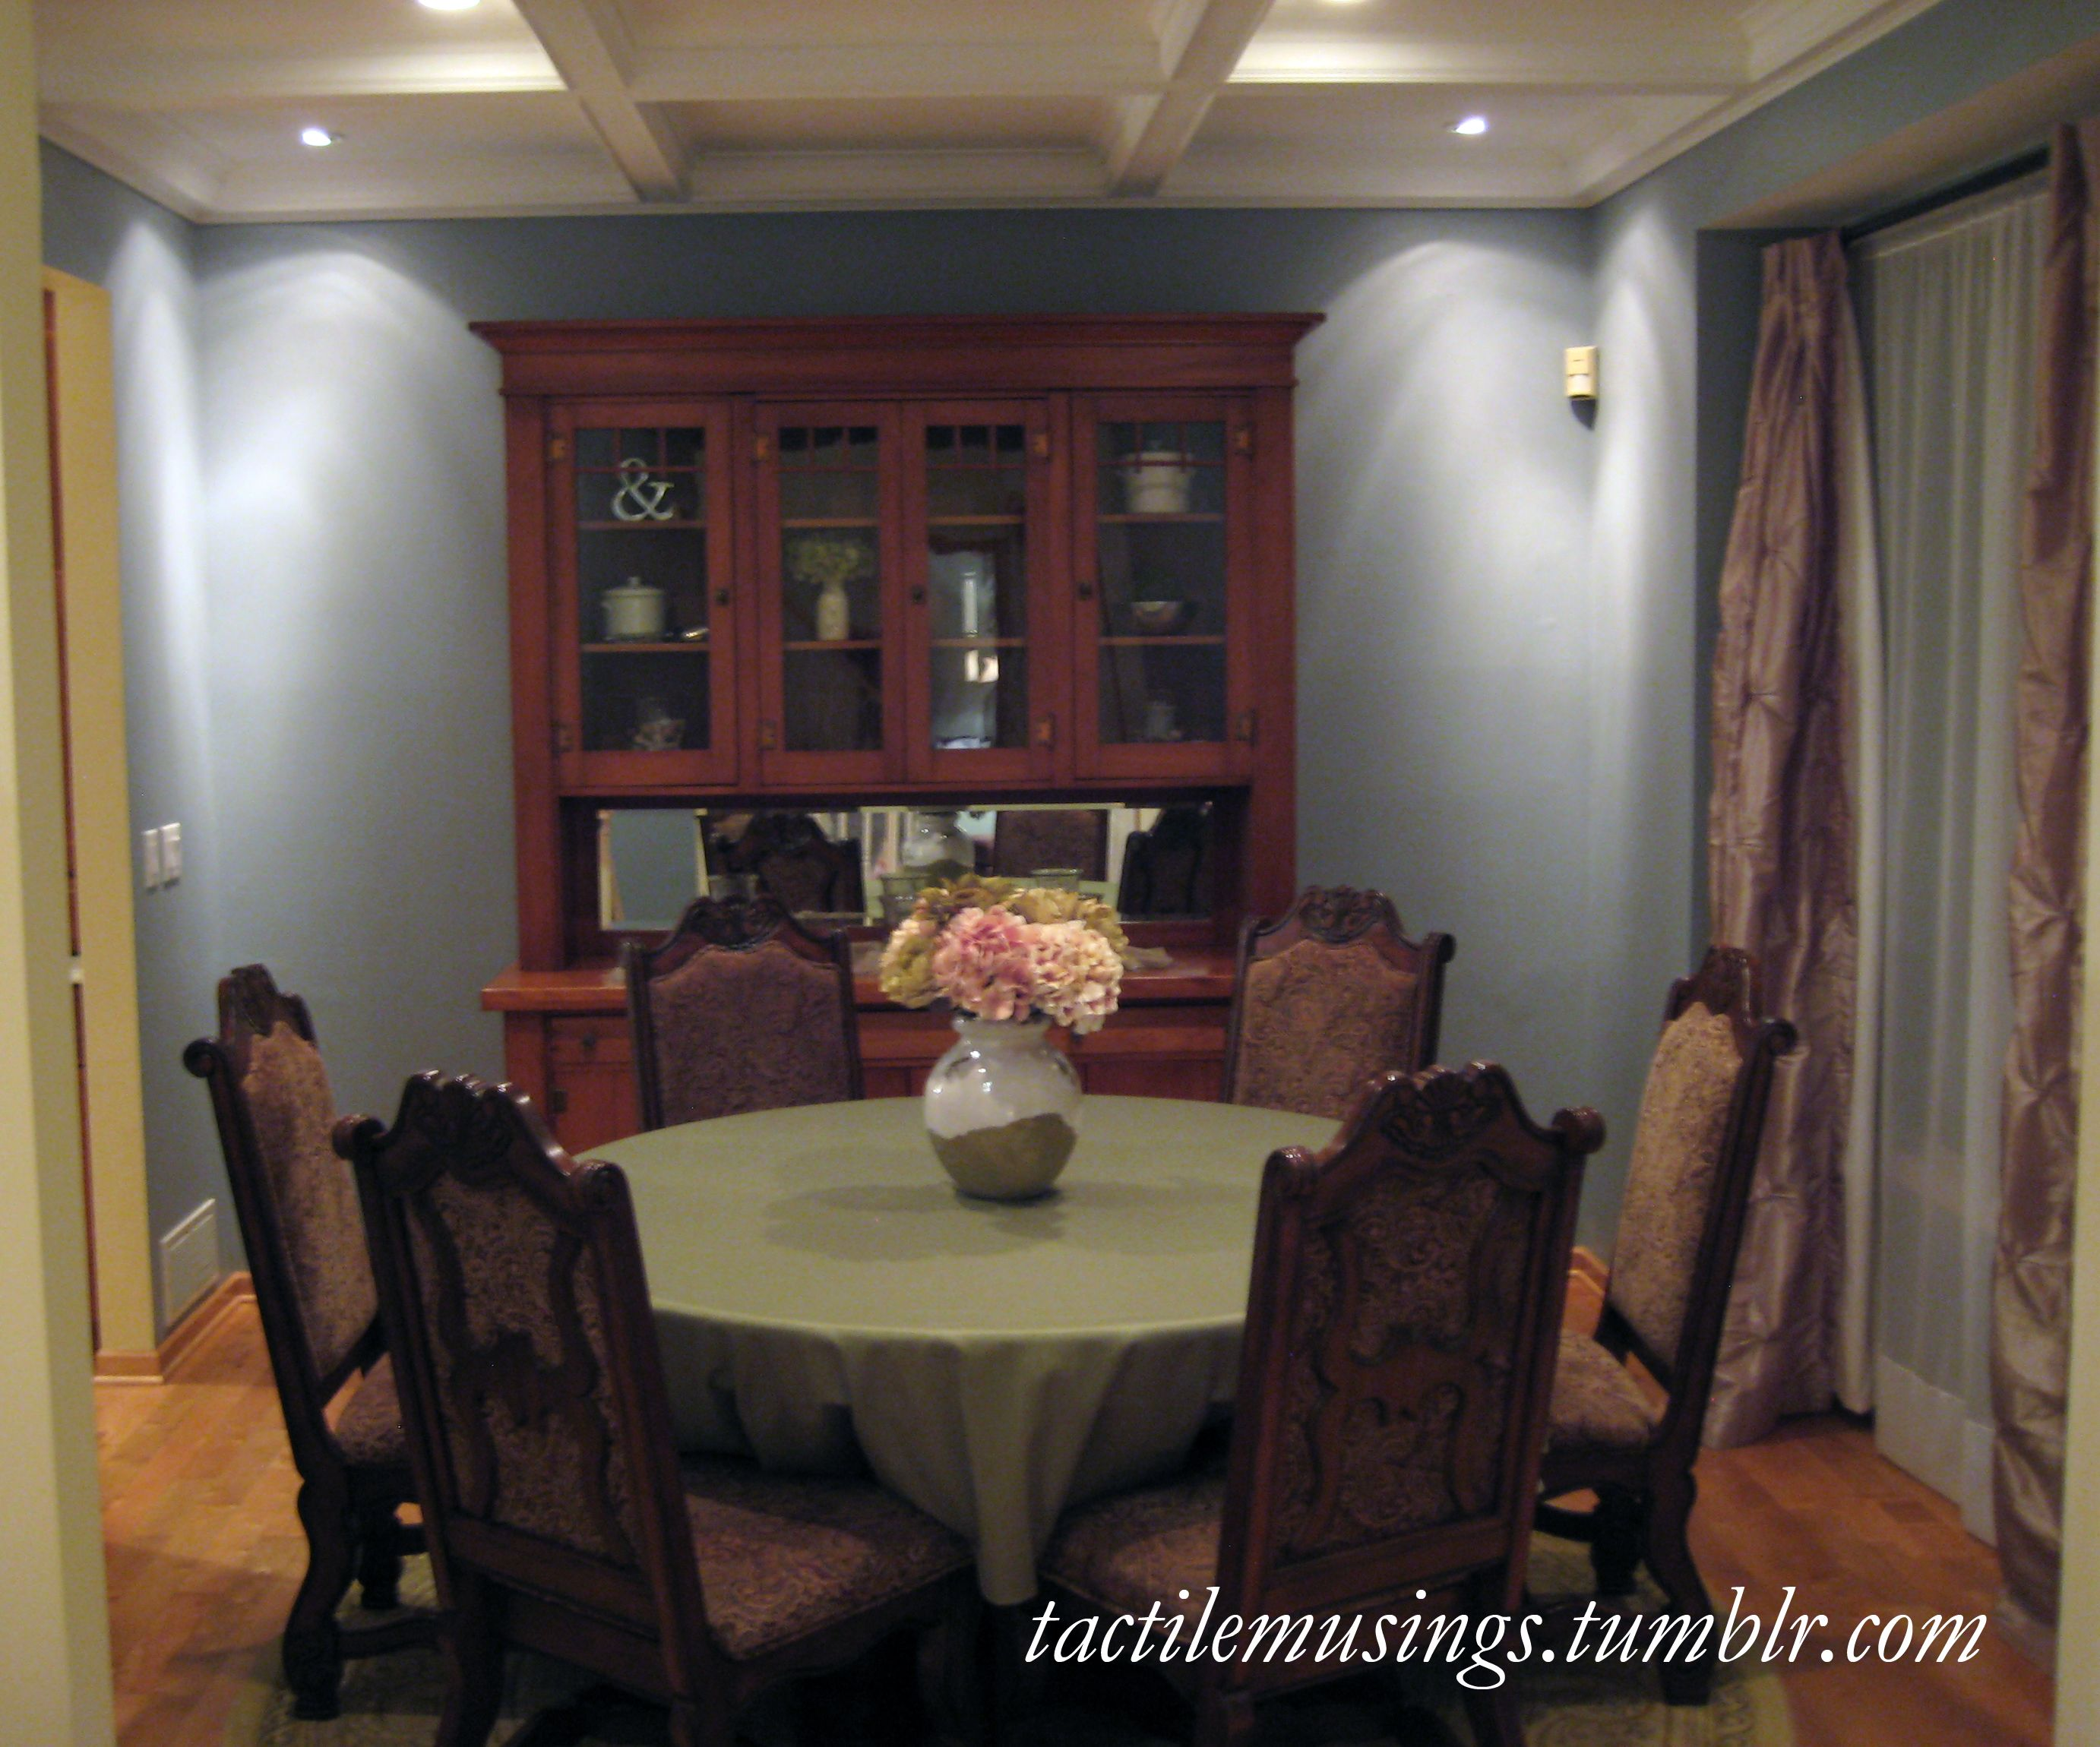 32 Stylish Dining Room Ideas To Impress Your Dinner Guests: Corner Accent Lighting In The Formal Dining Room